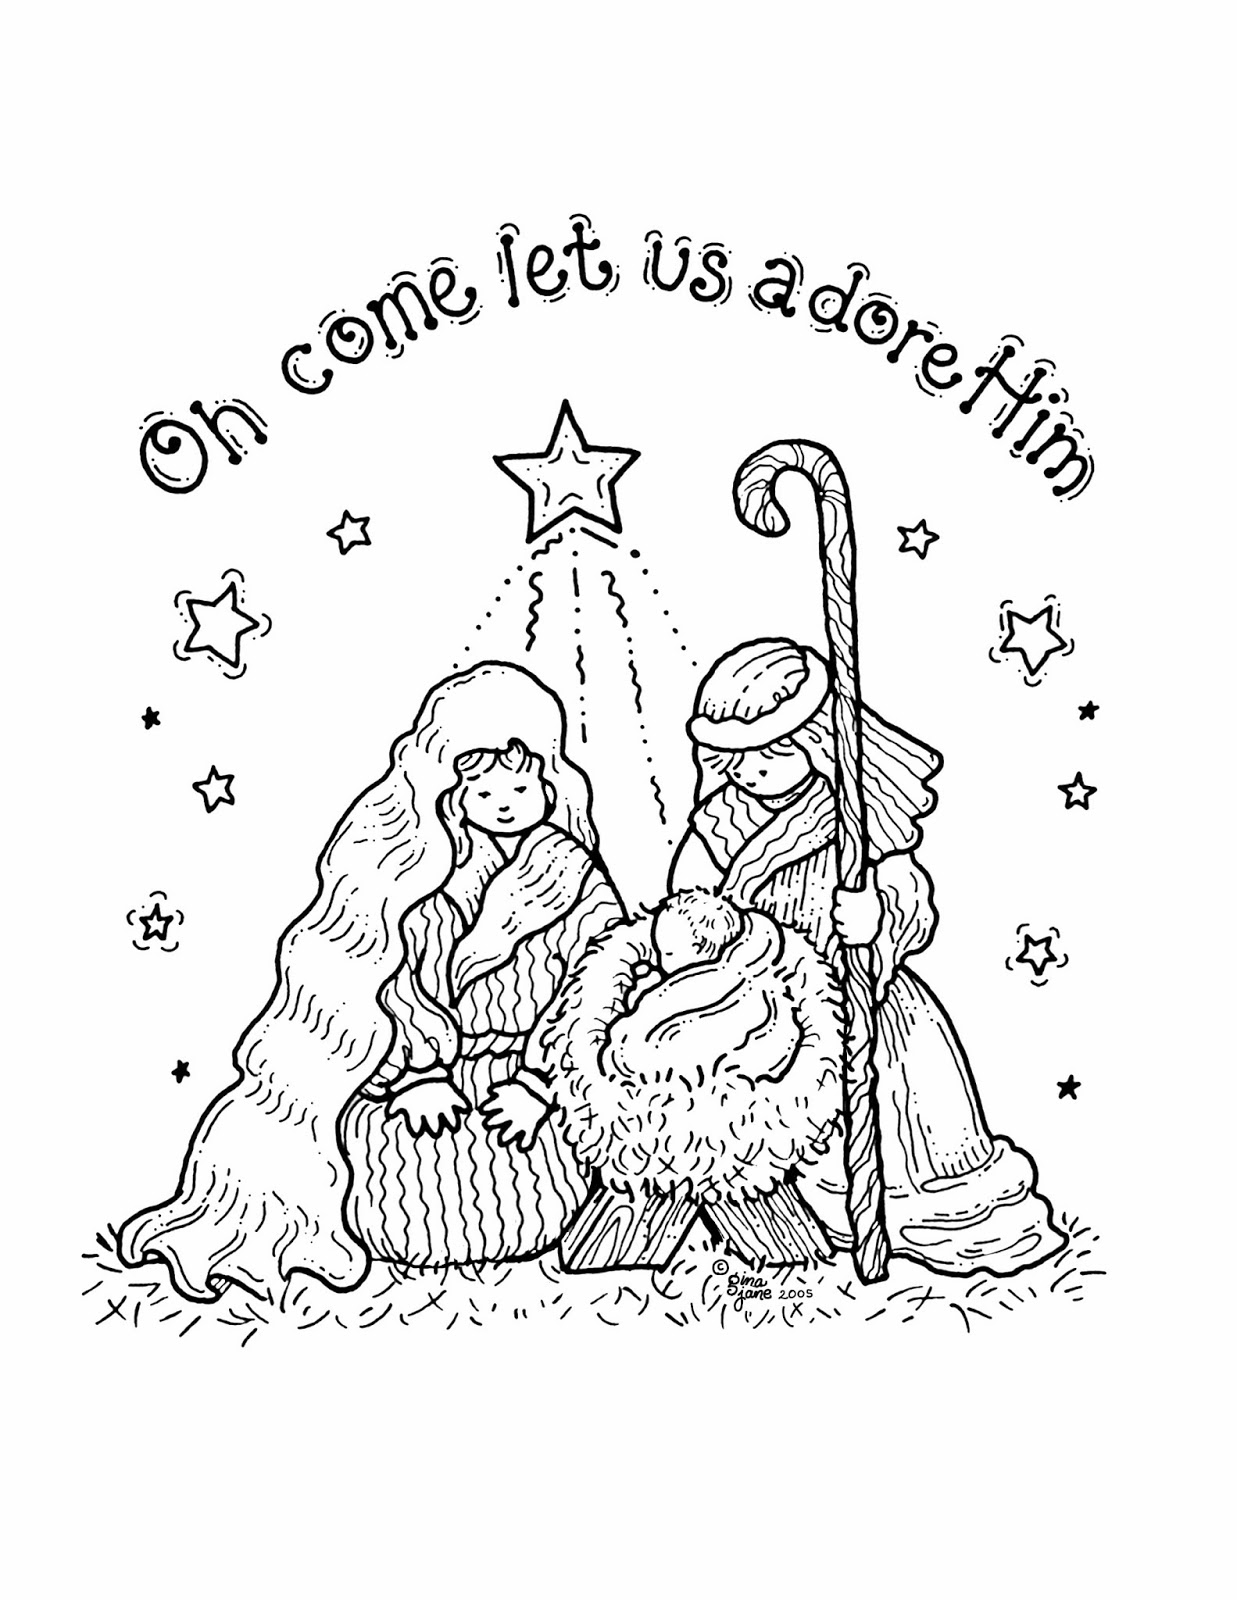 graphic regarding Free Printable Nativity Scene called Free of charge Printable Nativity Coloring Webpages for Young children - Least complicated